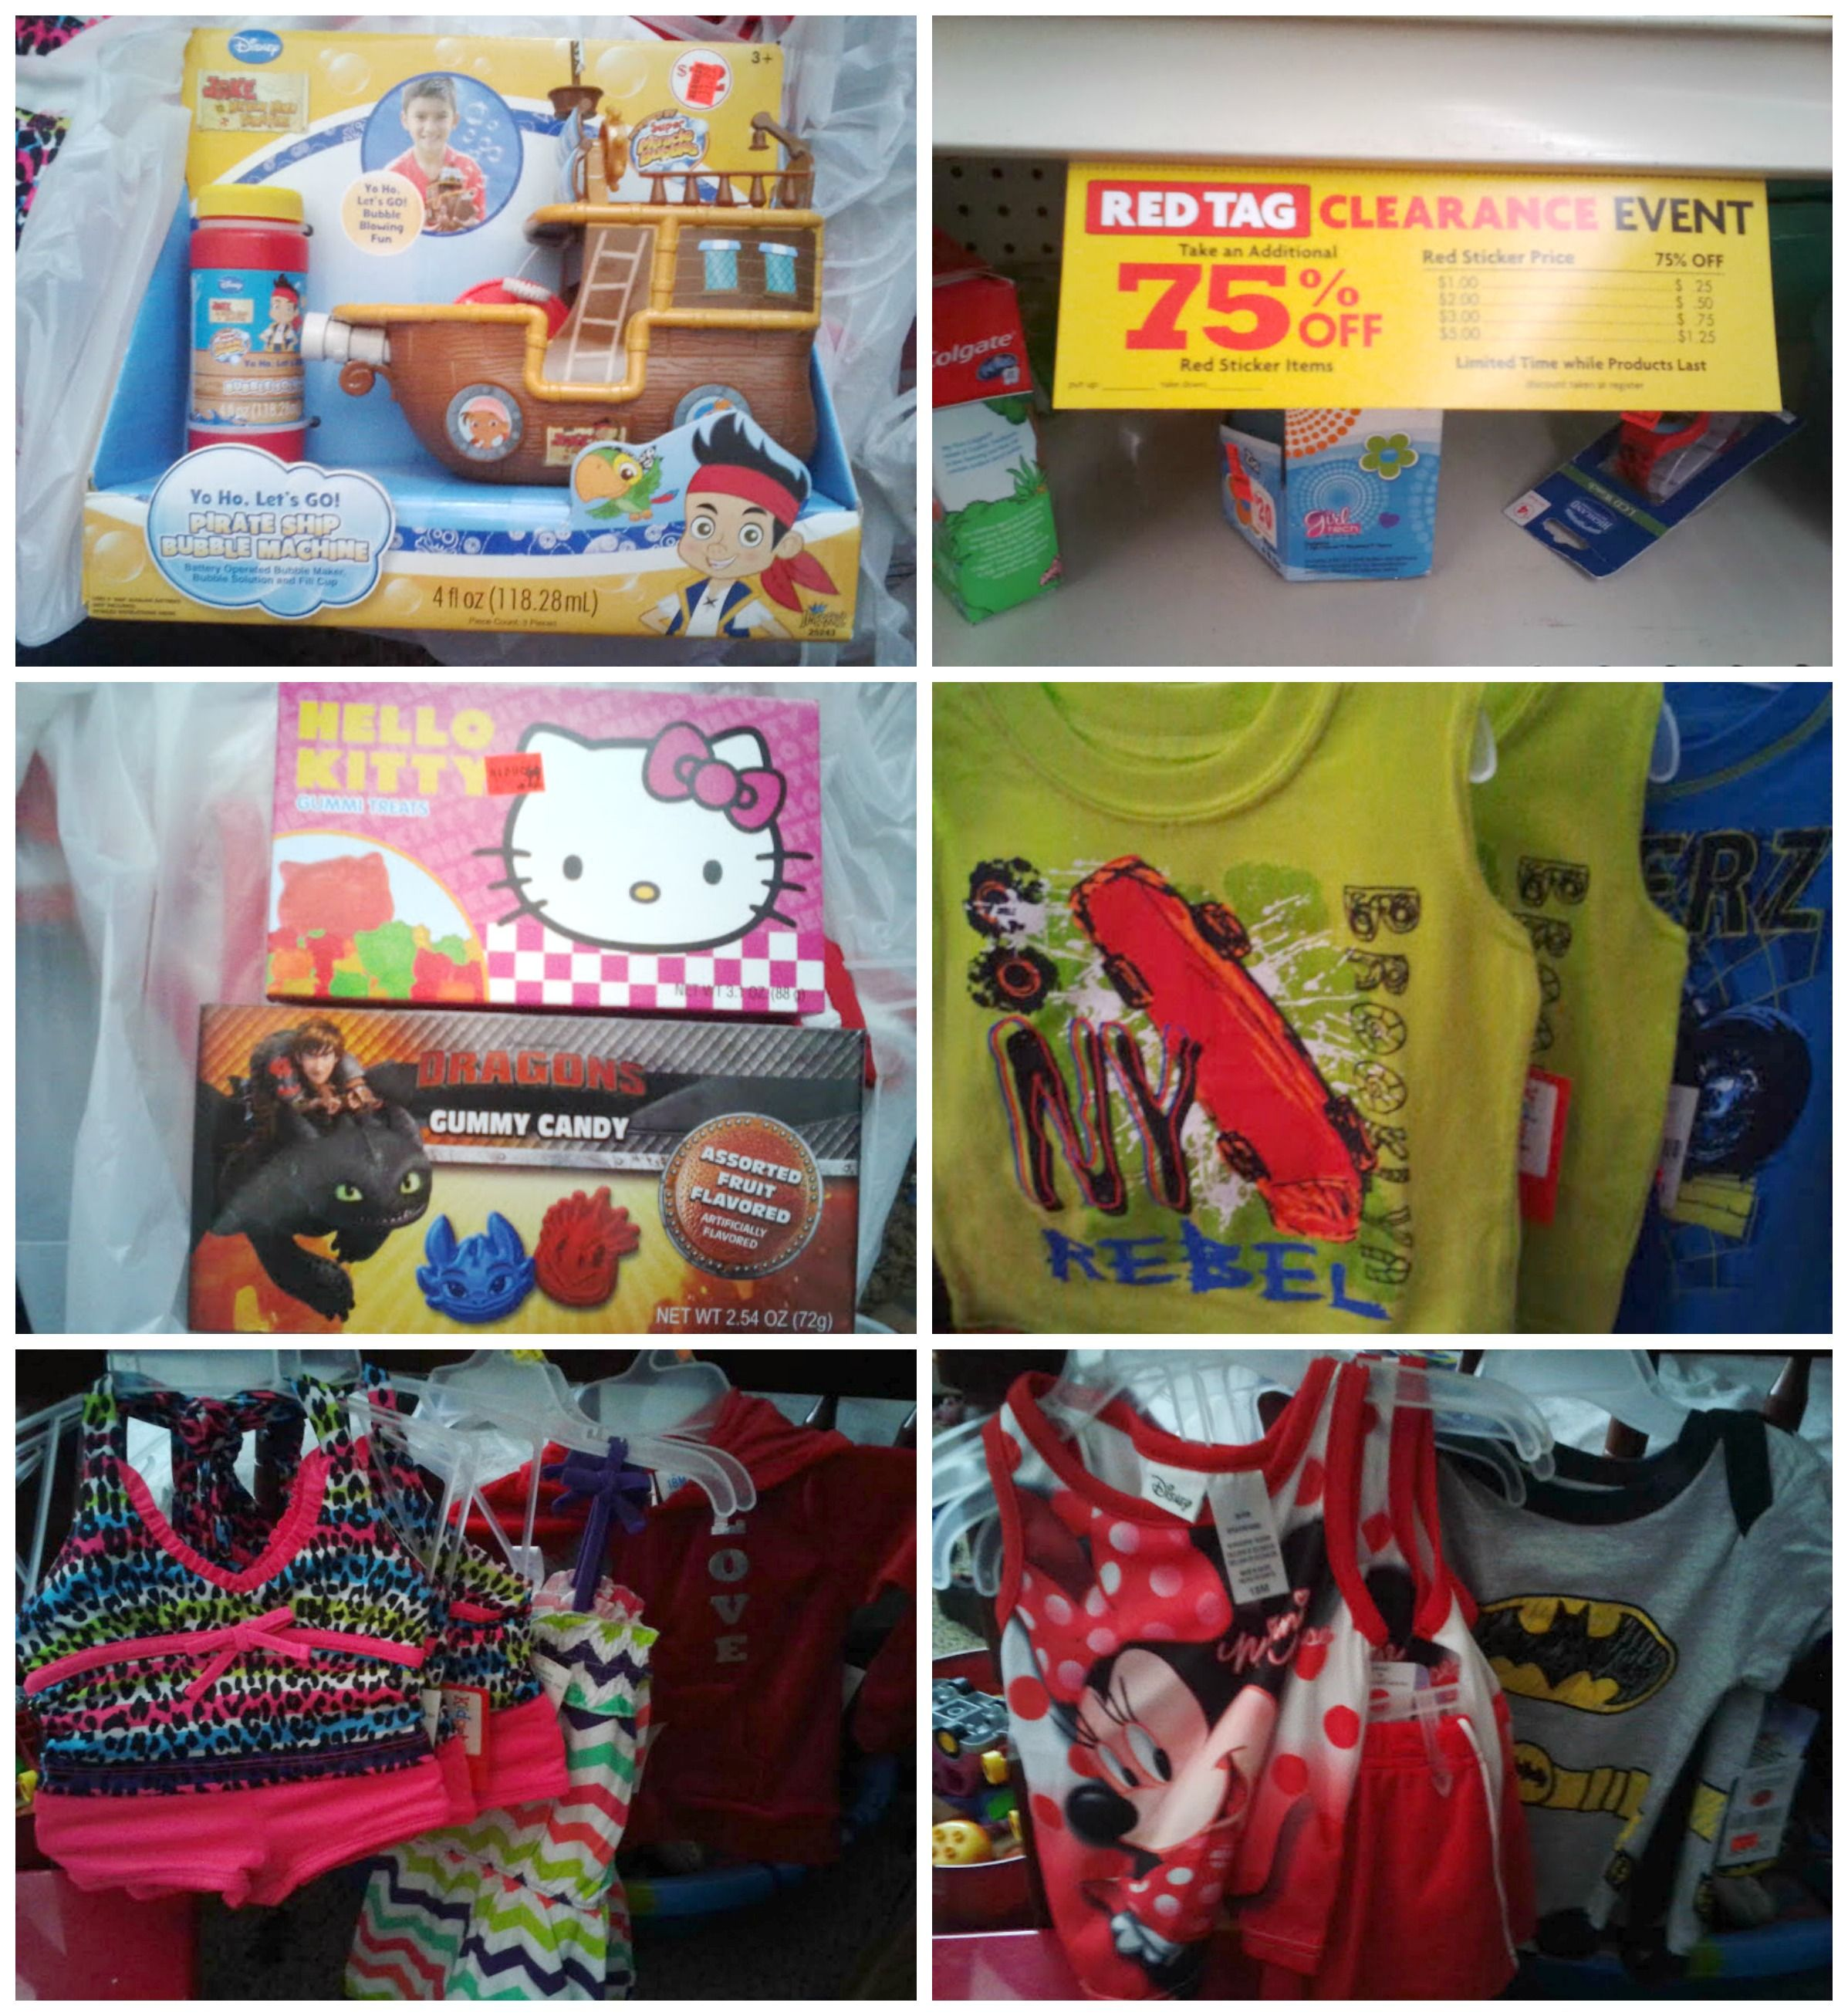 be1dd17e2215 Family Dollar Extra 75% Off Red Tag!!! Kids clothes sets .63-.88 ...